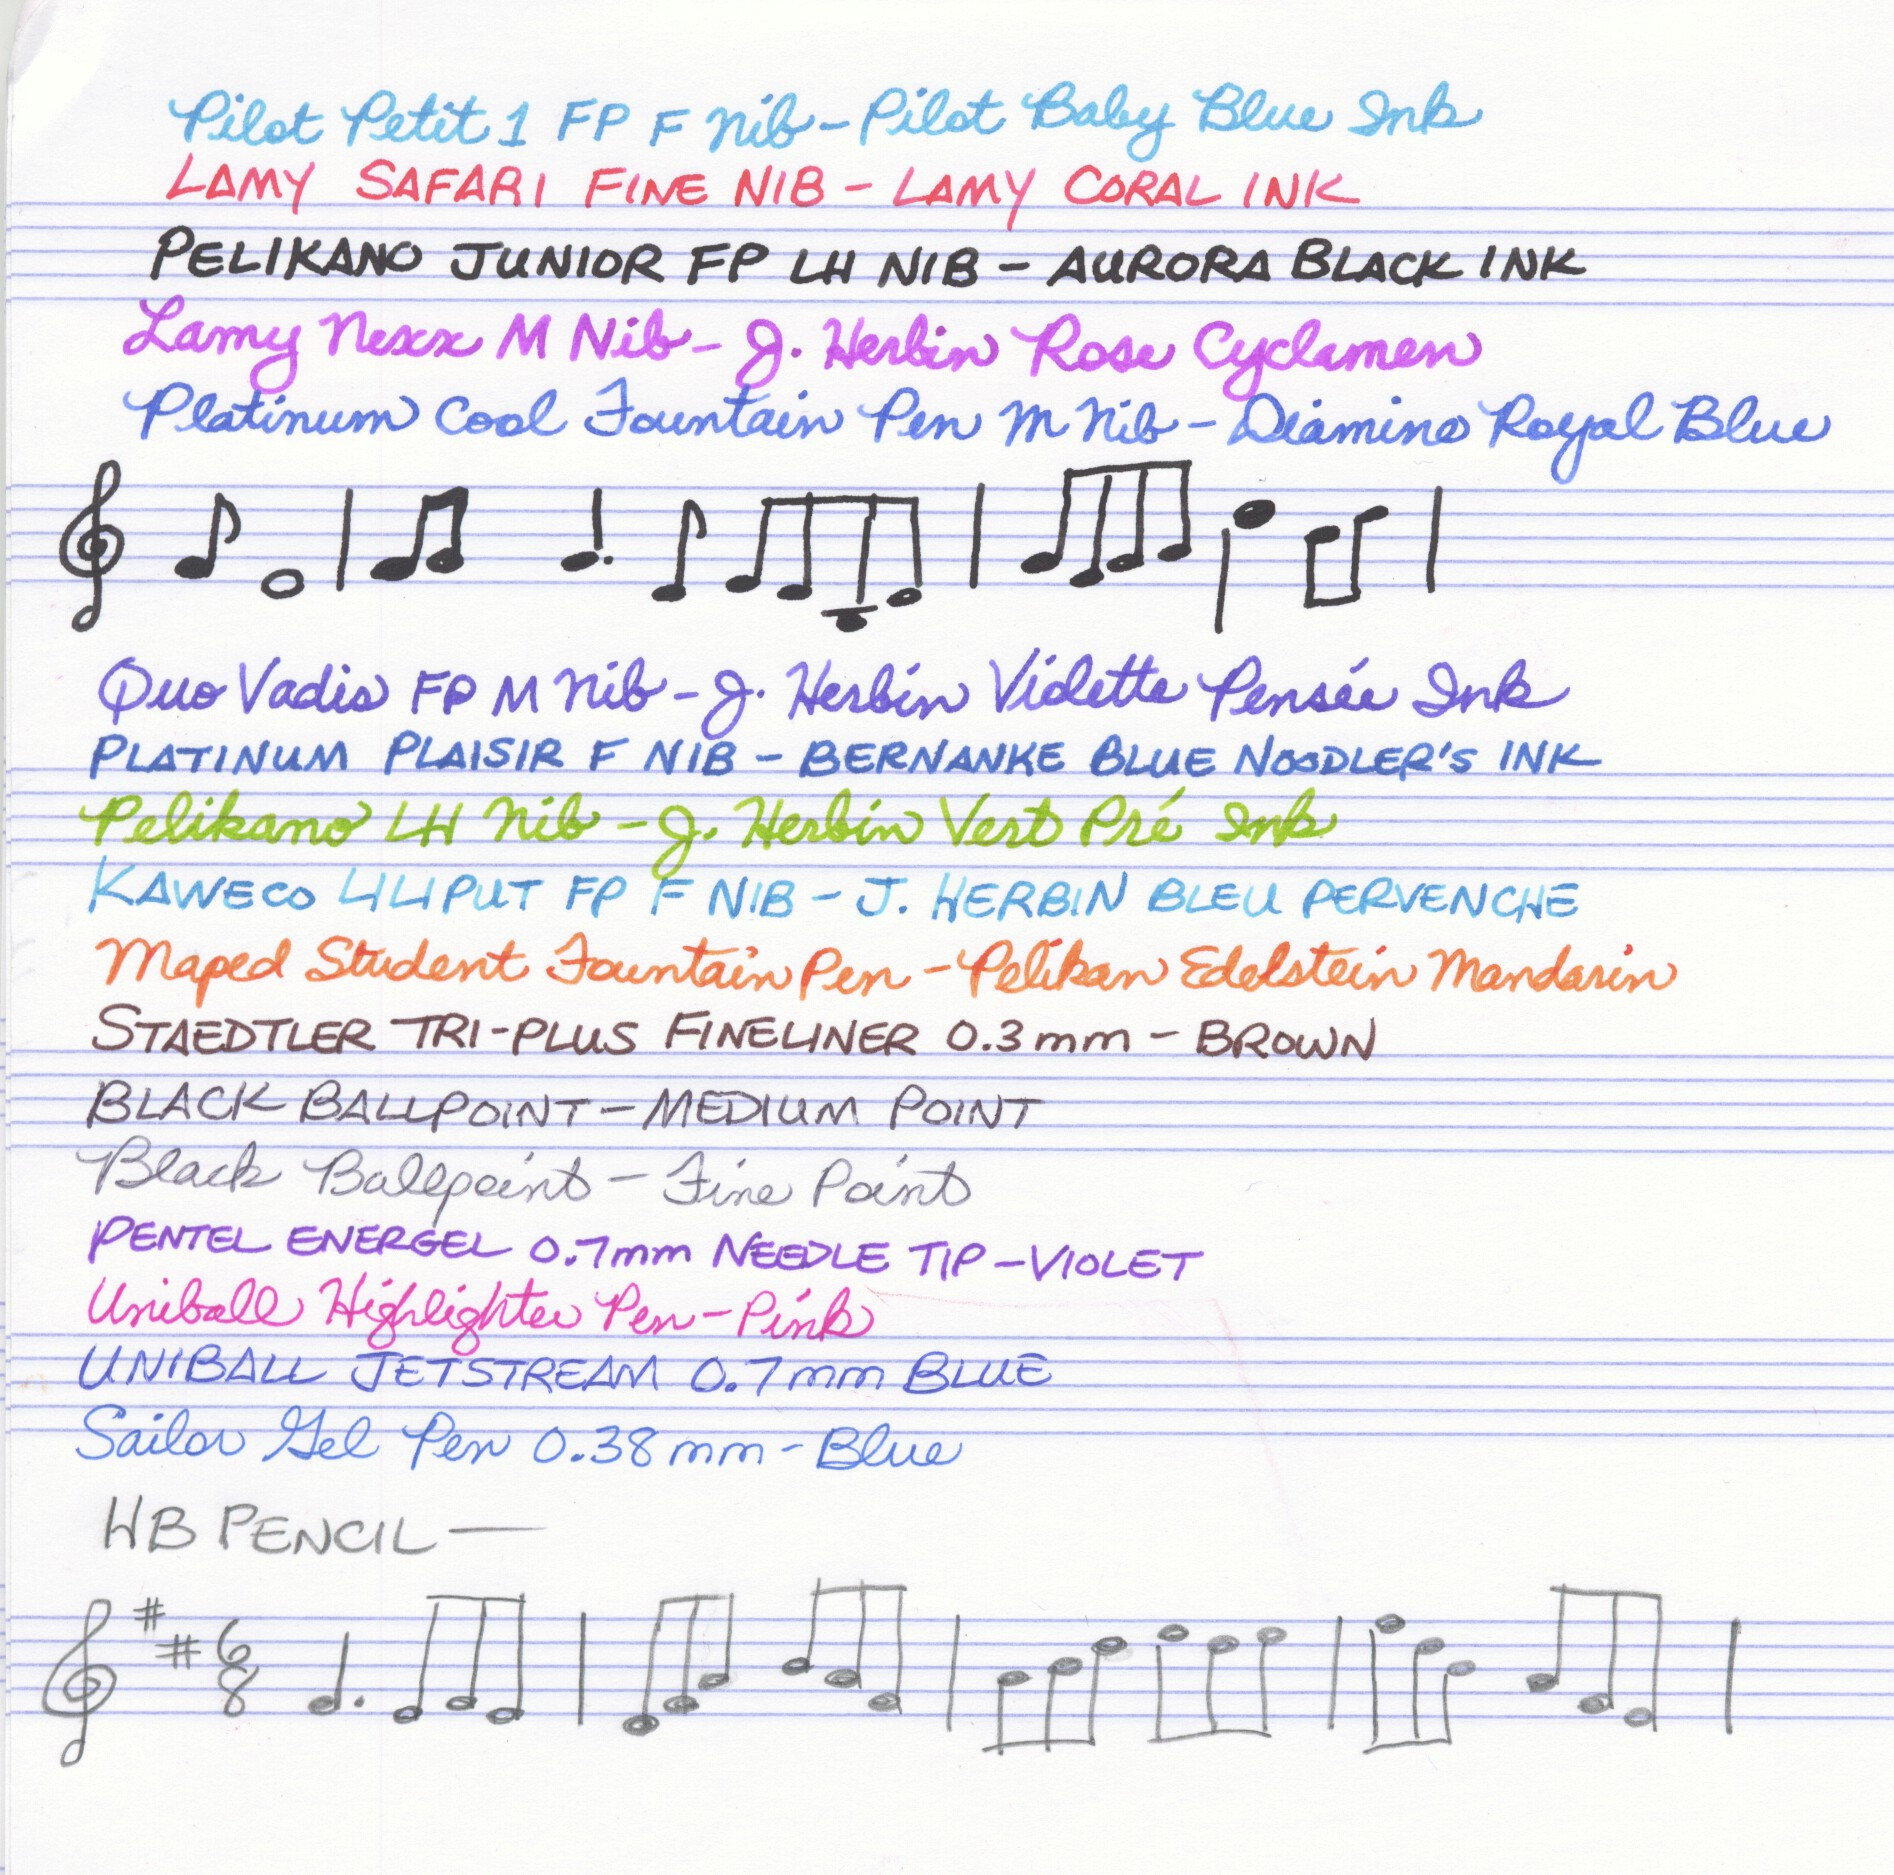 Clairefontaine Music Notebook - Writing Test (Front)